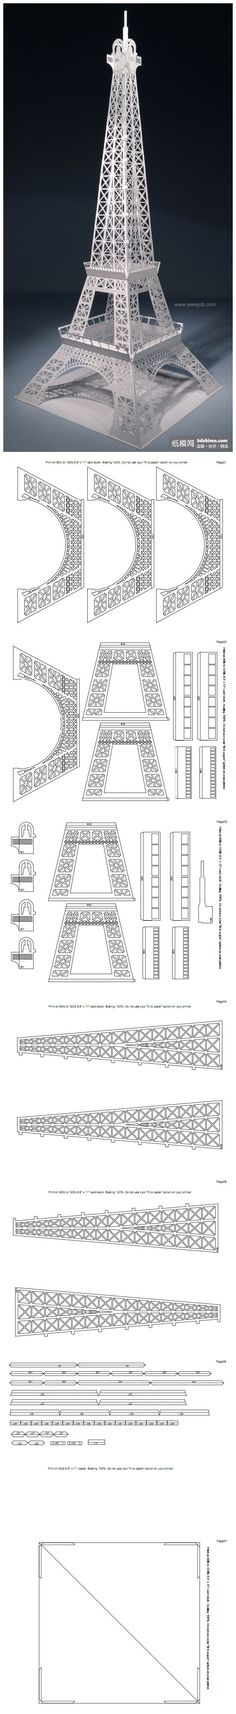 Eiffel tower paper model quinceanera pinterest for Eiffel tower model template